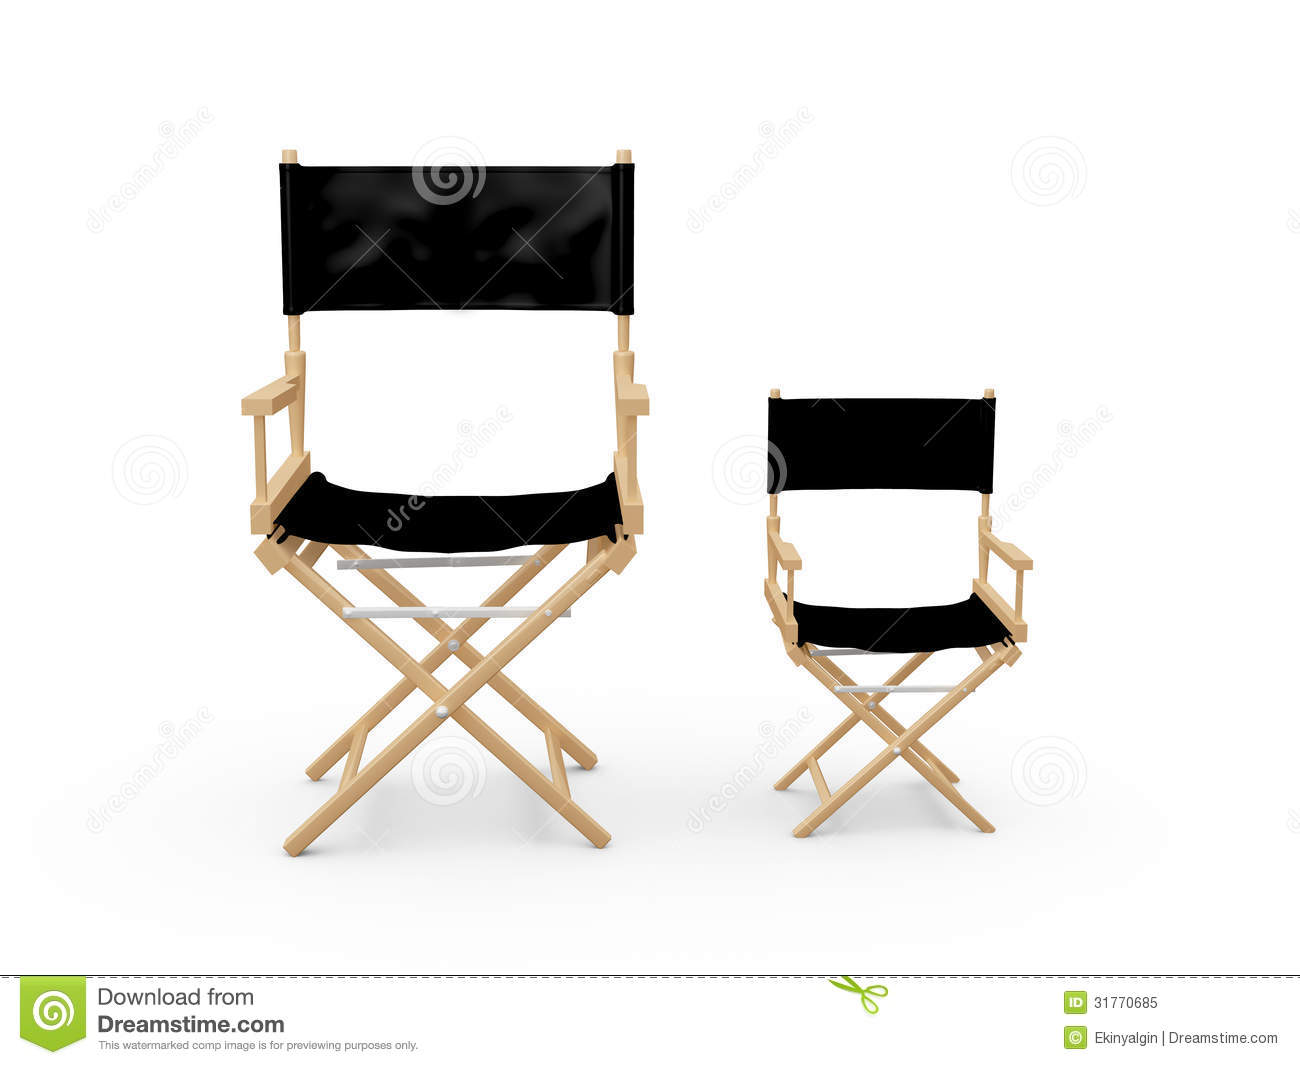 chair stool difference gym as seen on tv directors chairs stock illustration image of